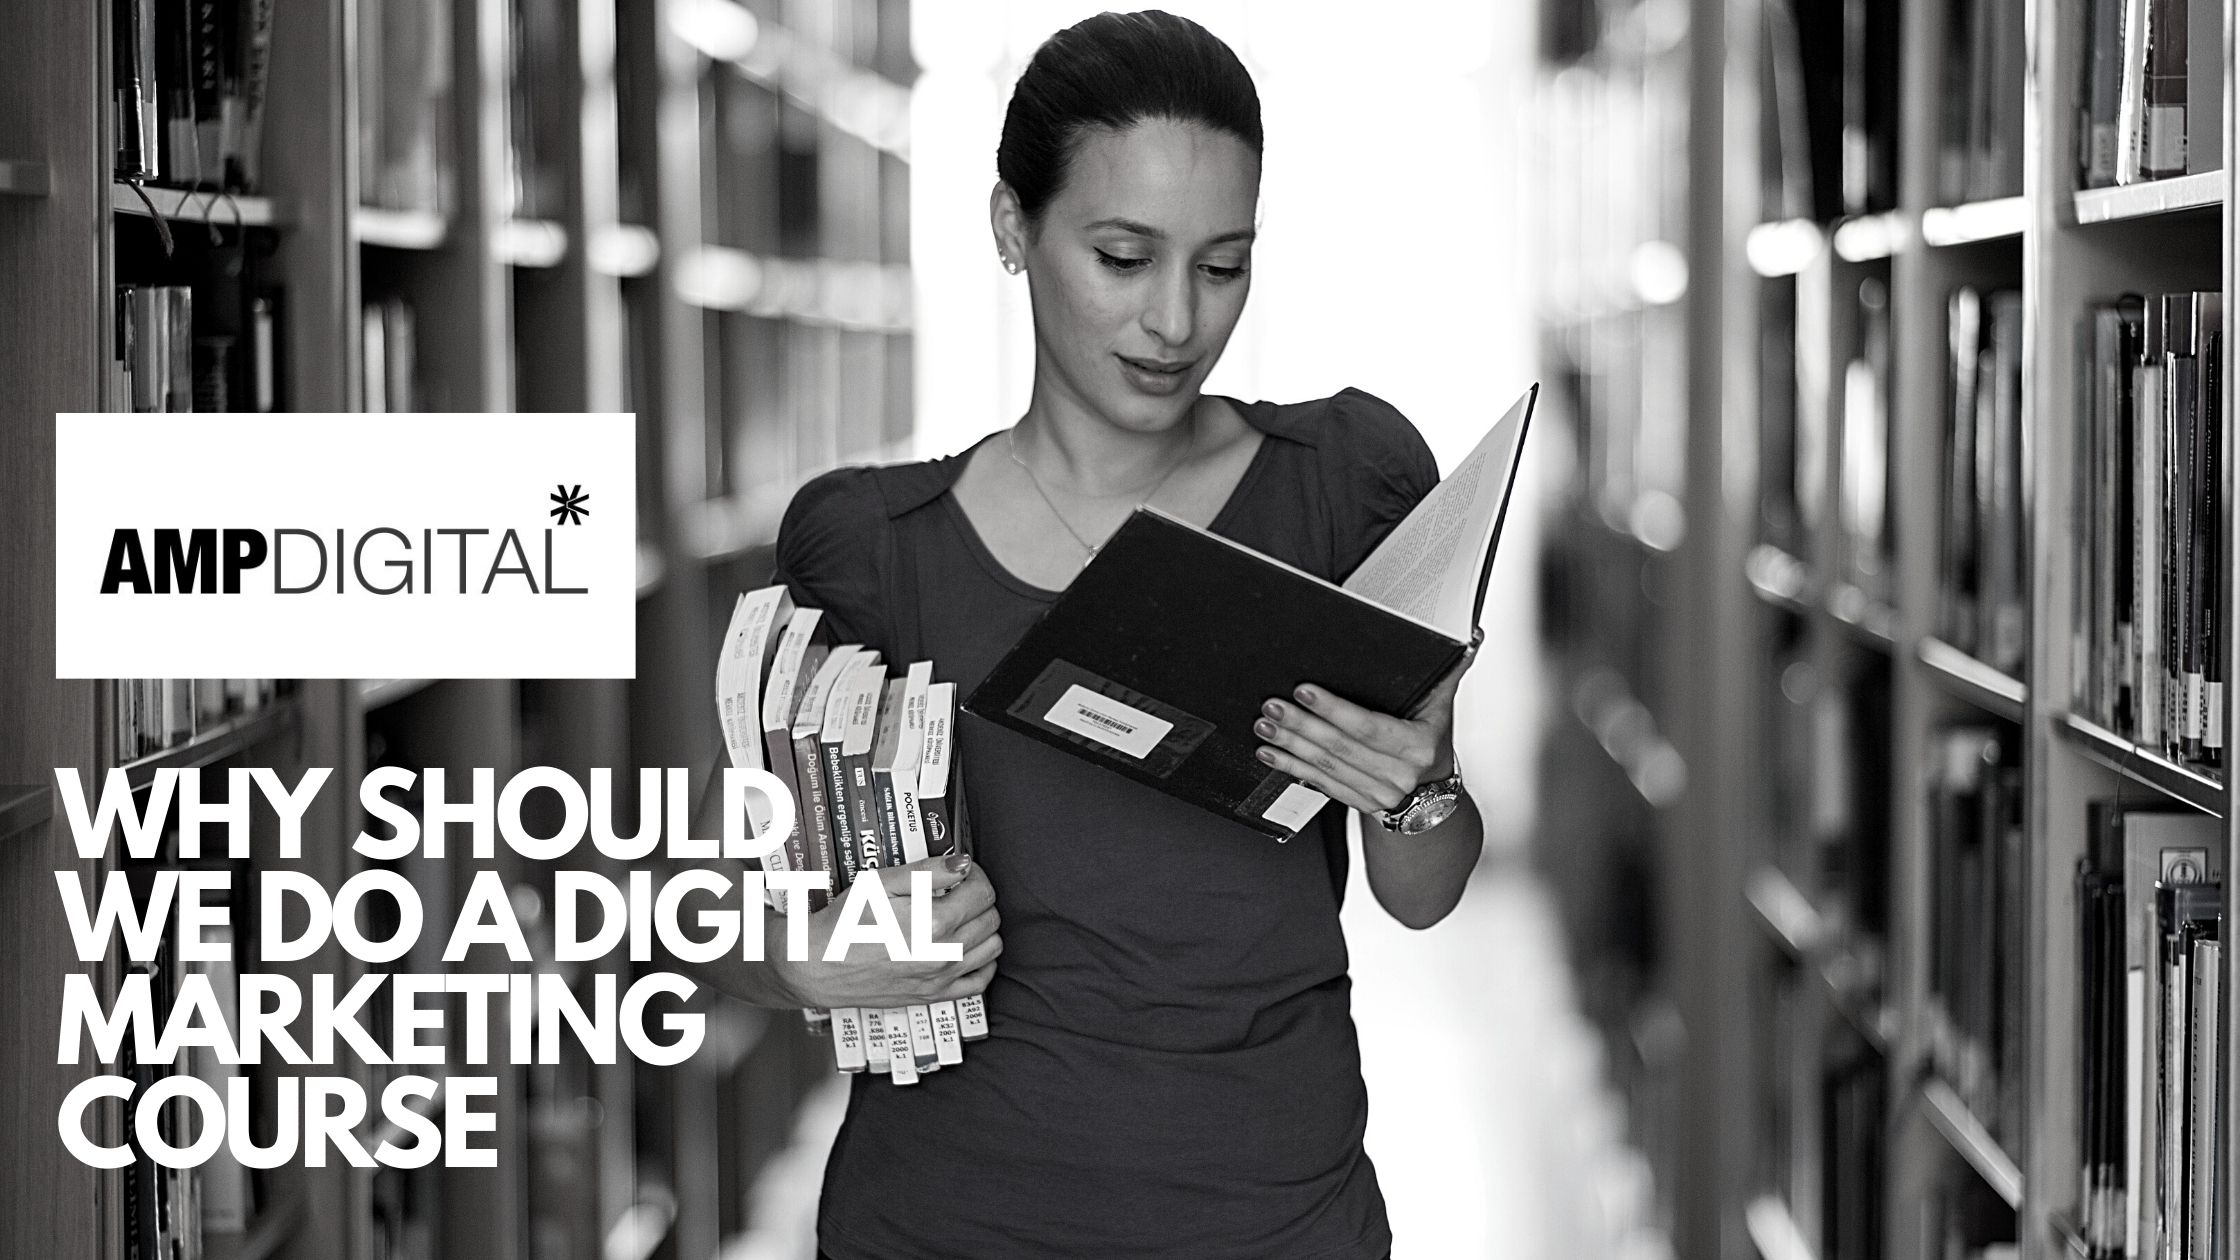 Why should we do a Digital Marketing course?